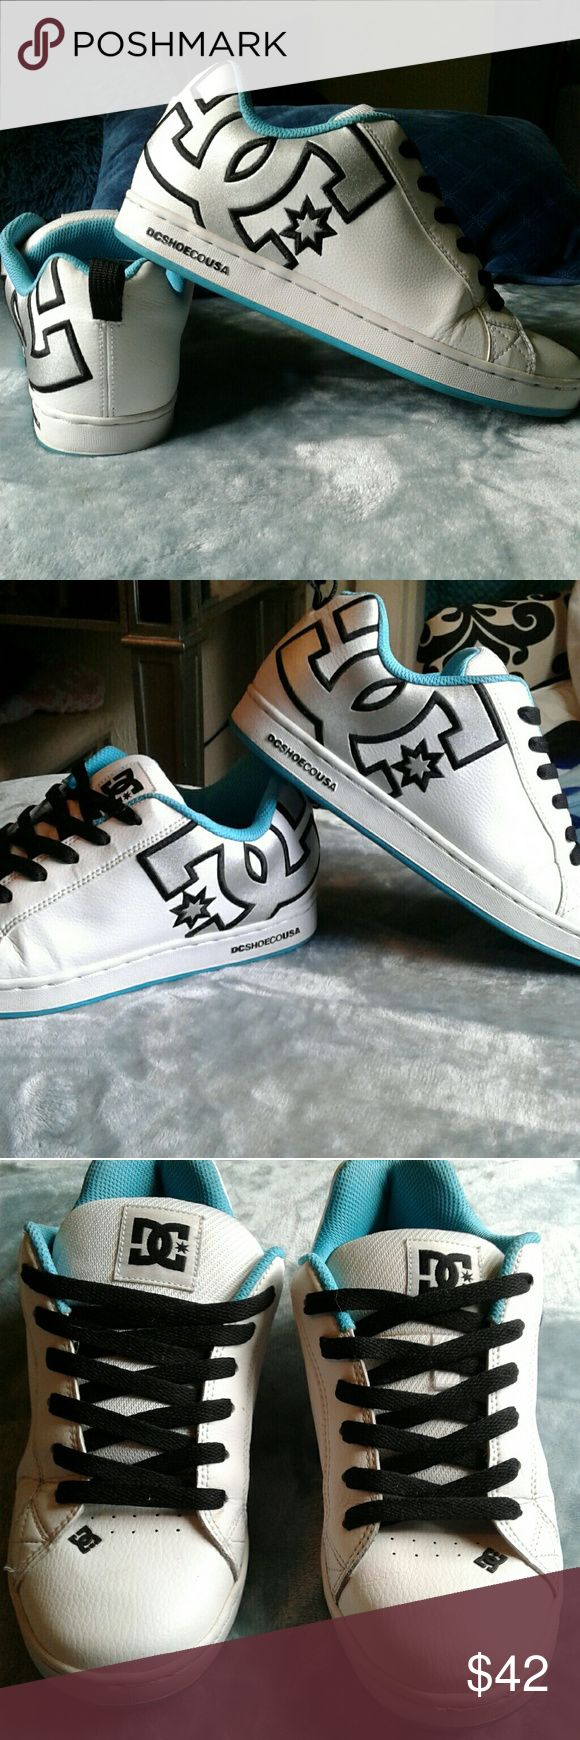 DC Shoes women's white shoe side logo 7.5 Women's pre loved great condition DC SHOES 7.5. White shoe, black laces, teal accent color, silver metallic DC logo on sides of shoes. DC logo on tounges. These shoes NICE!!! Thanks for looking!! DC Shoes Shoes Sneakers